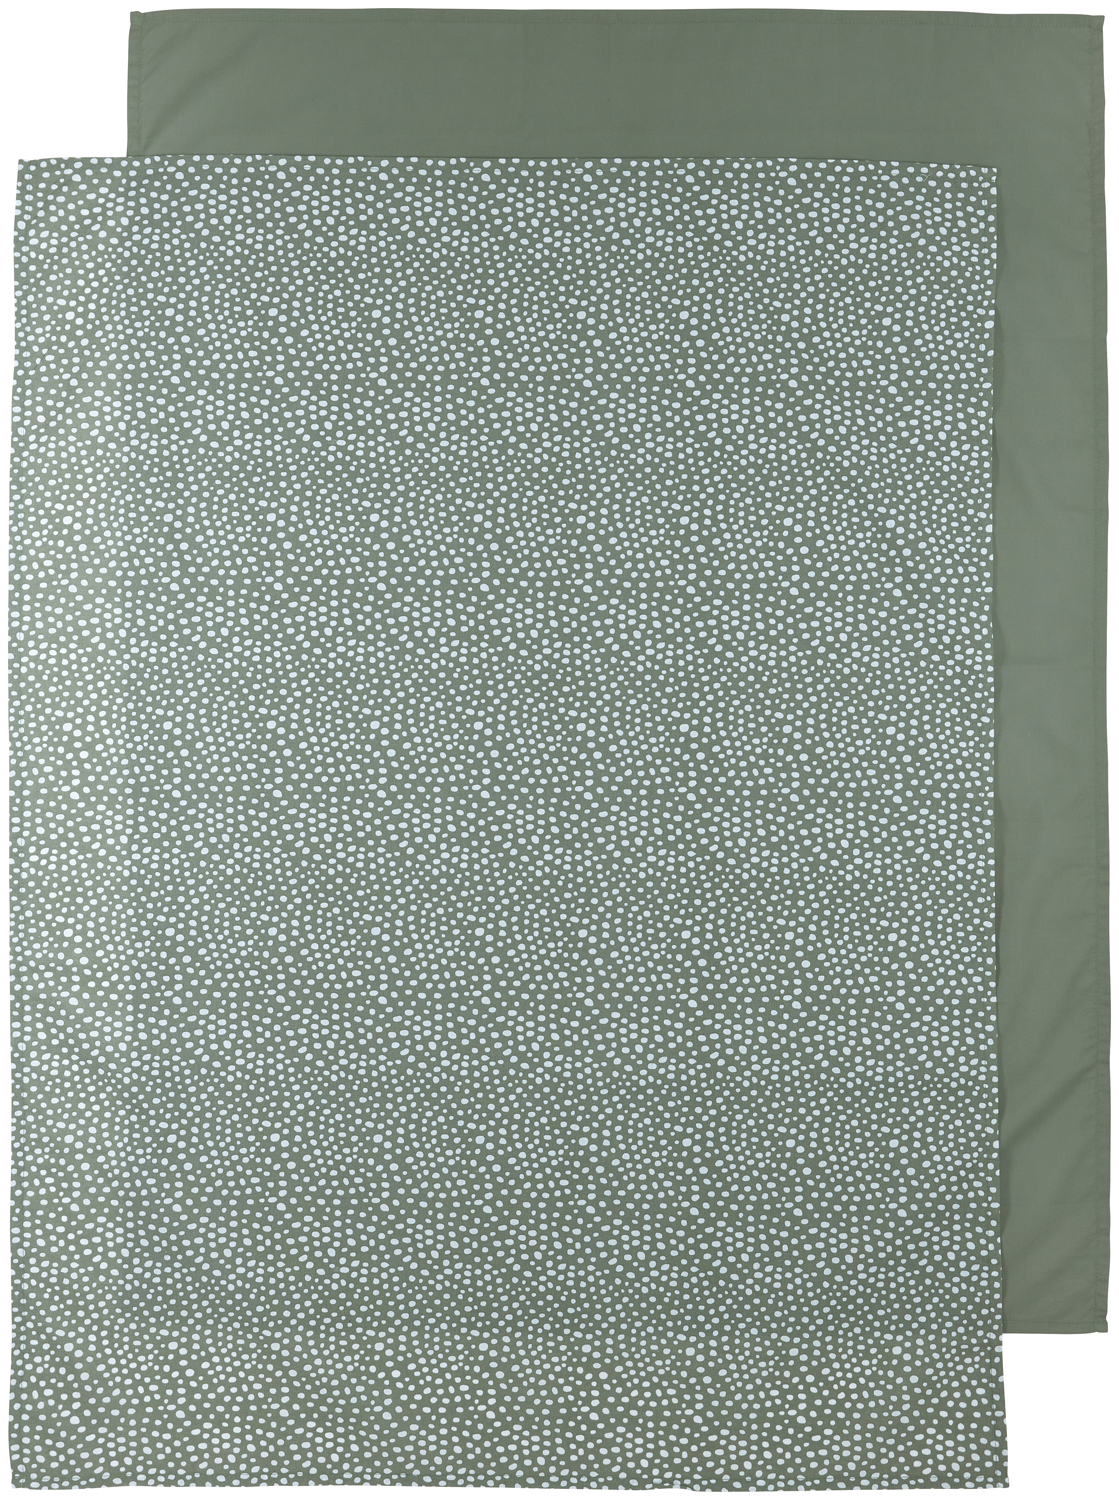 Wieglaken 2-Pack Cheetah/Uni - Forest Green - 75x100cm